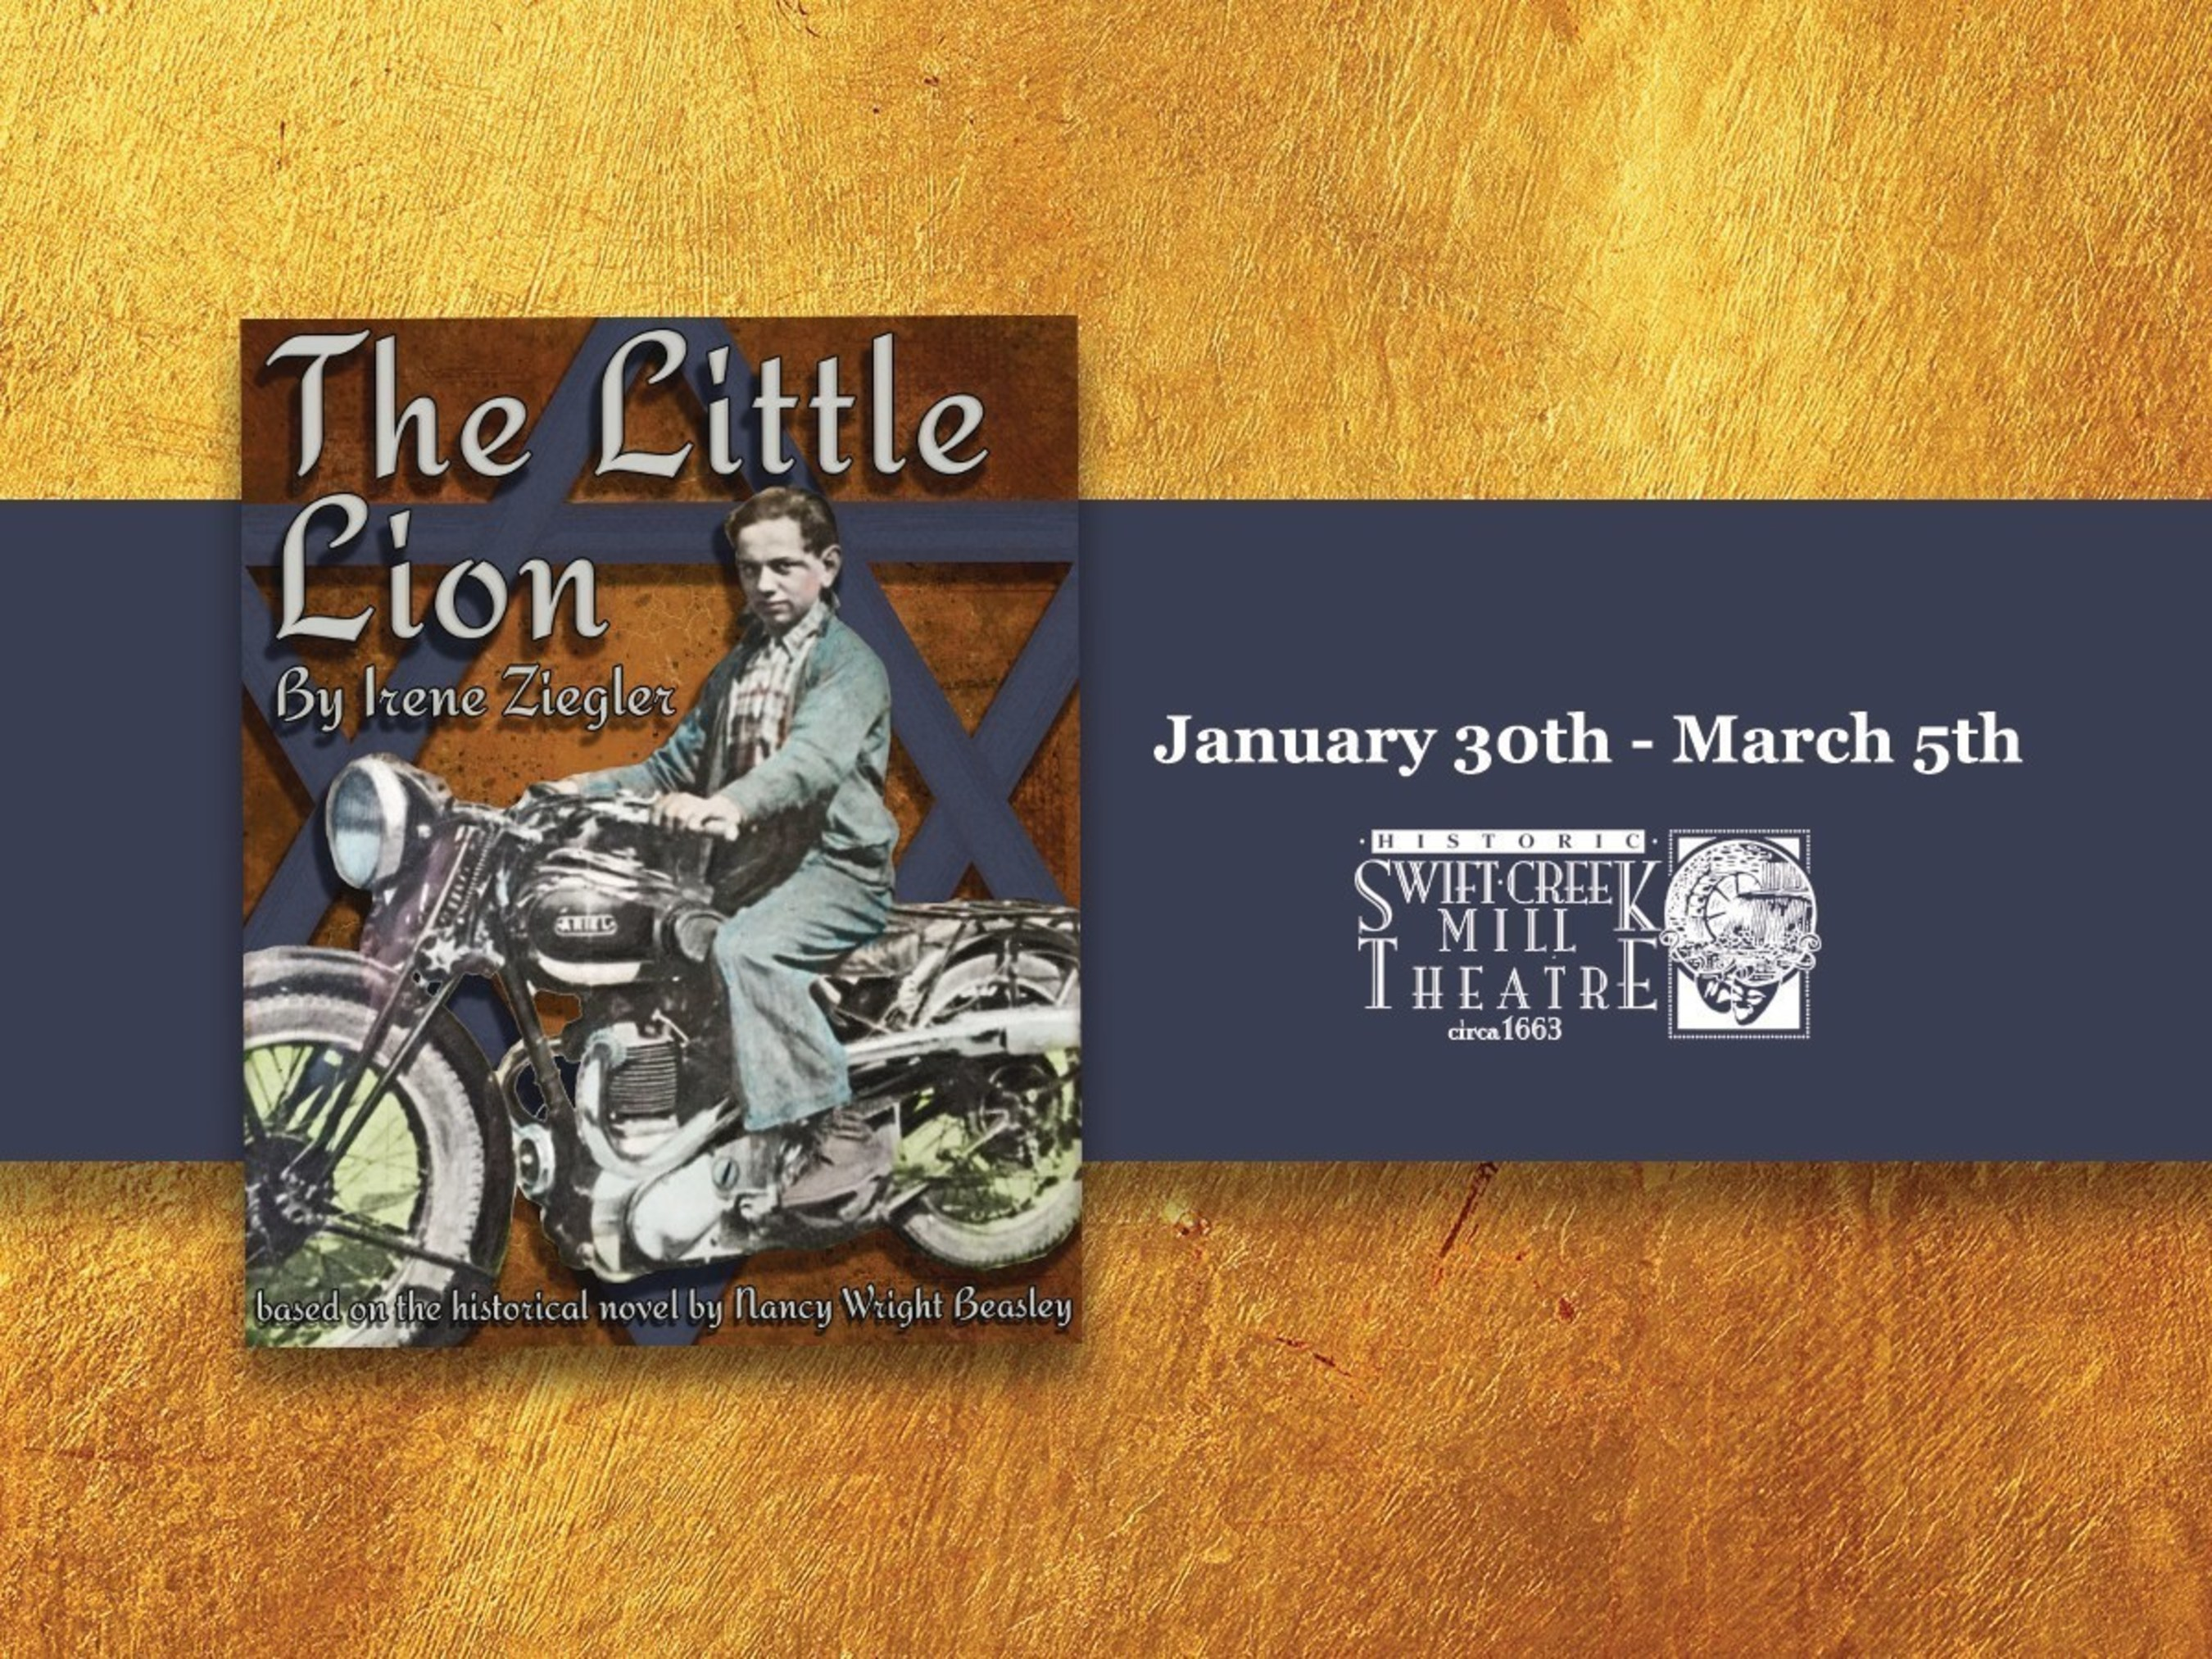 Swift Creek Mill Theatre Hosts the World Premiere of The Little Lion on Saturday, January 30th